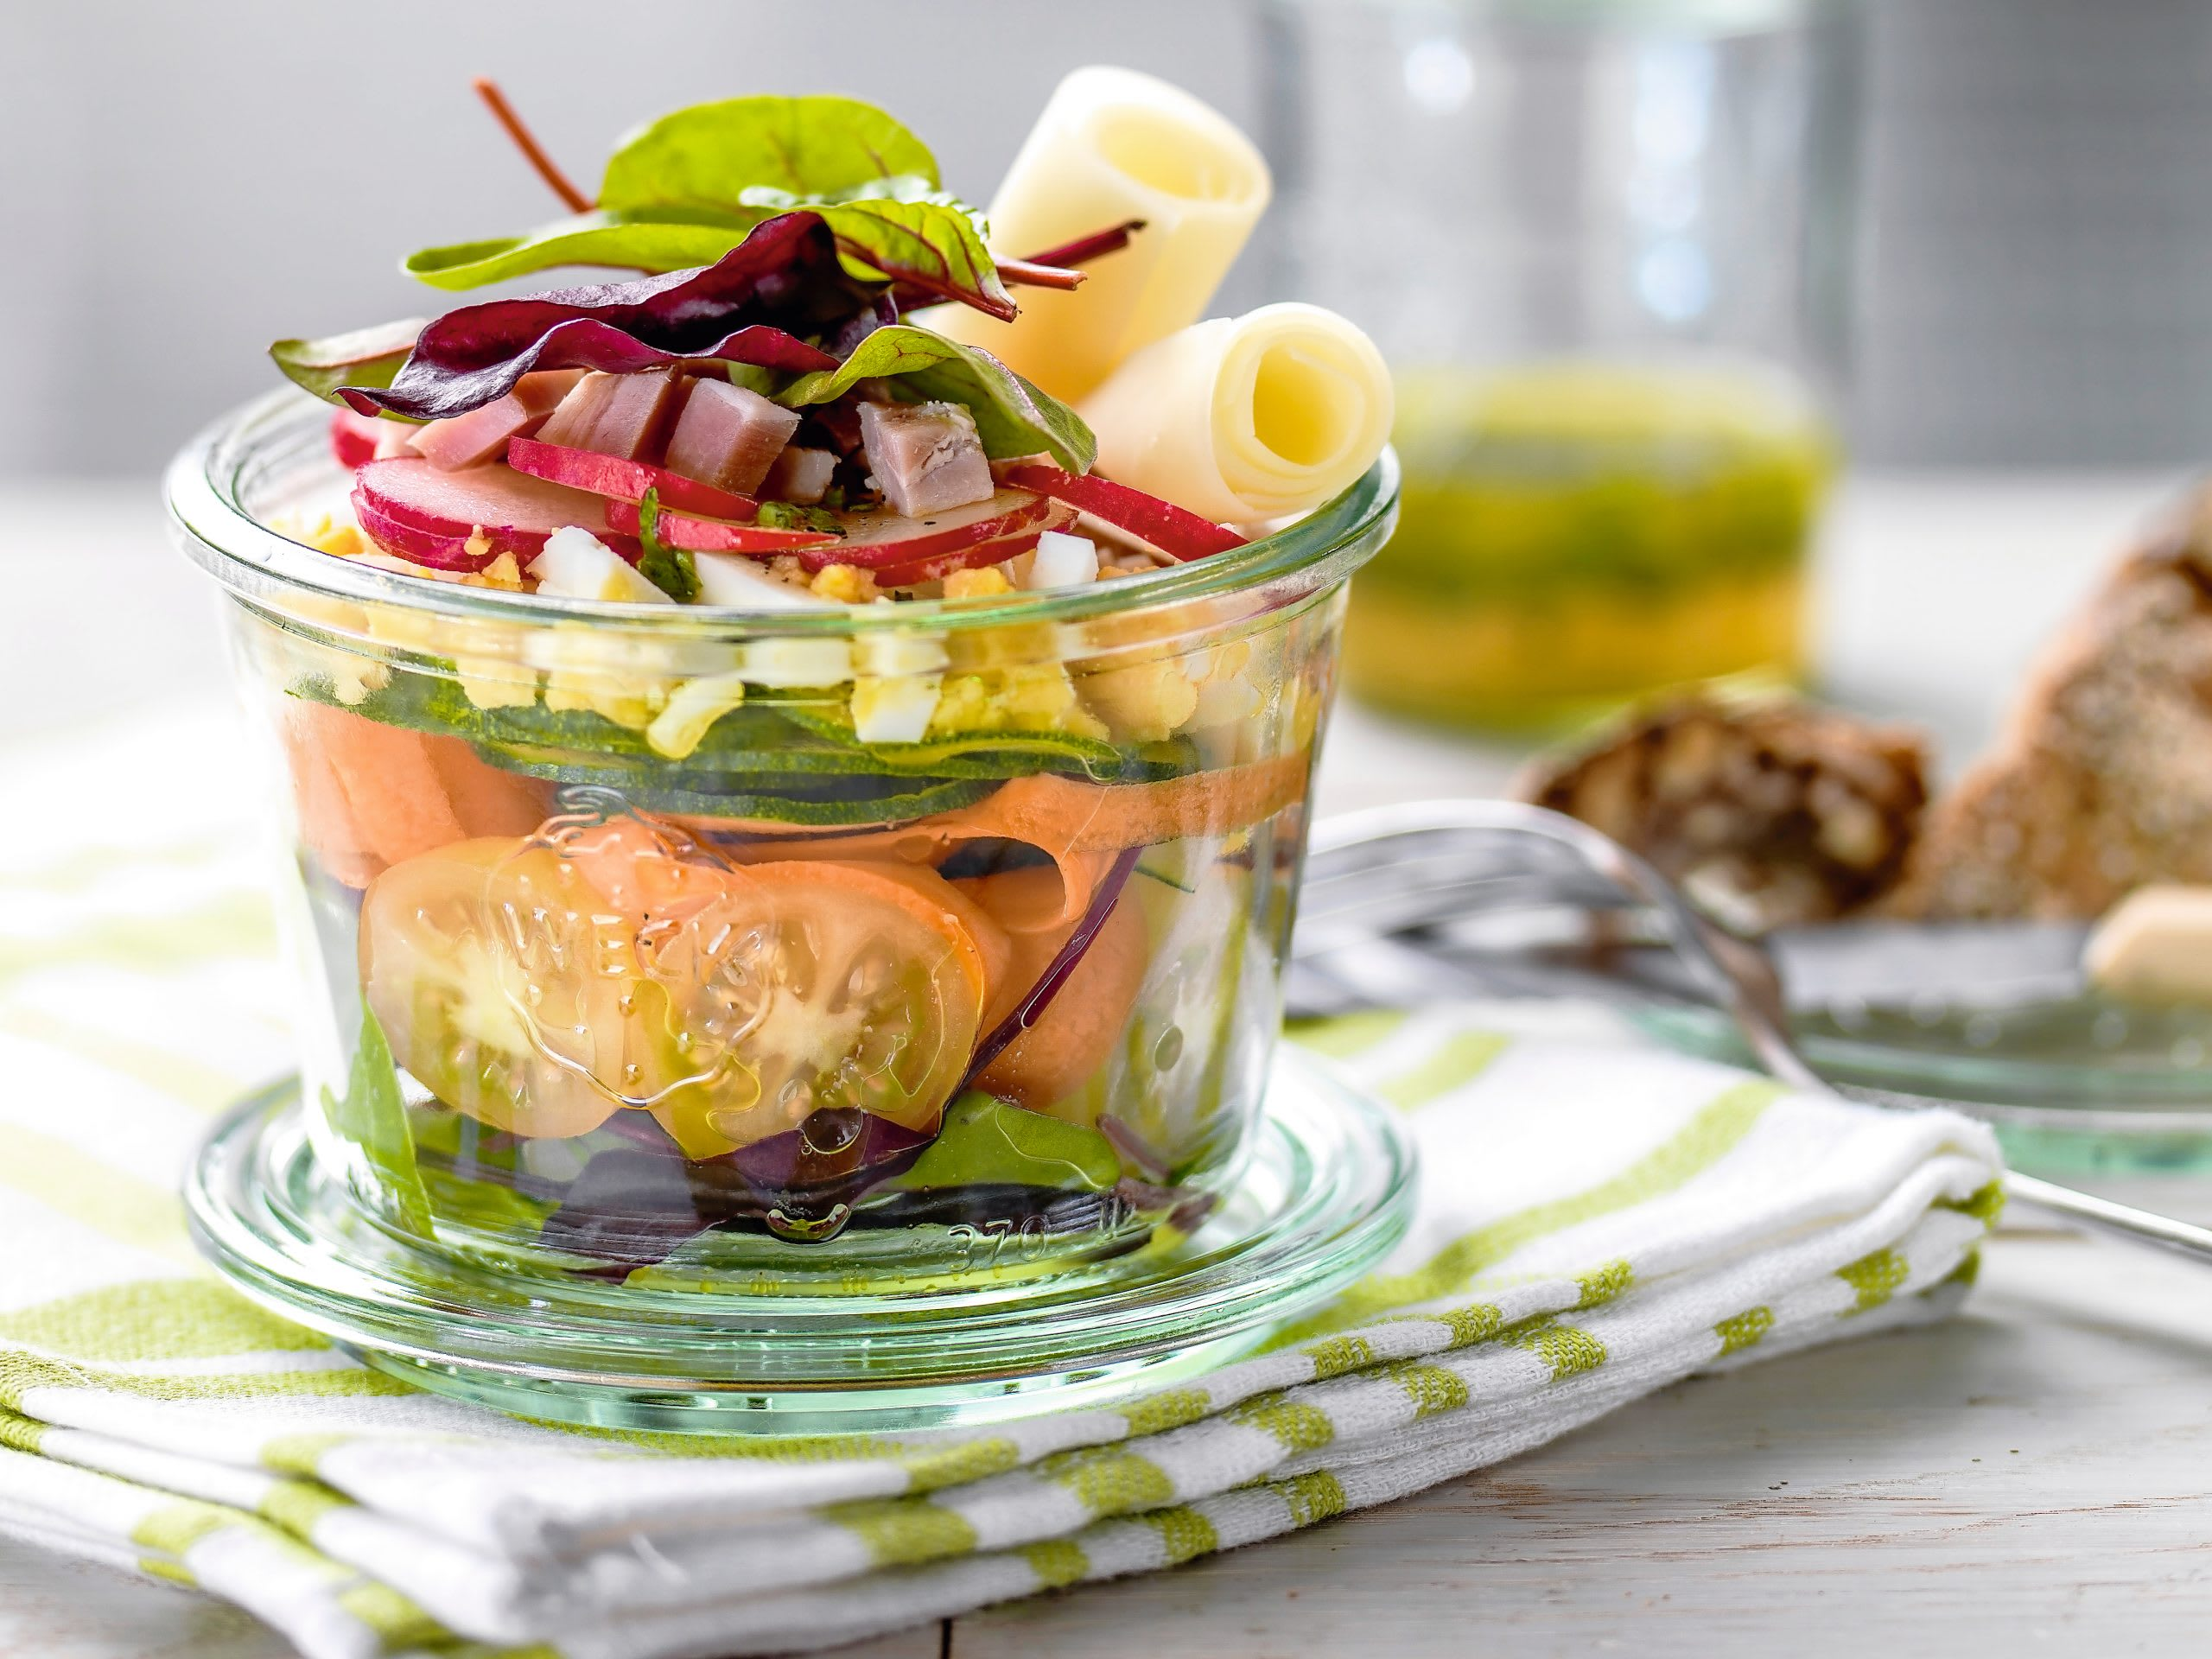 Verrine de salade (low carb)